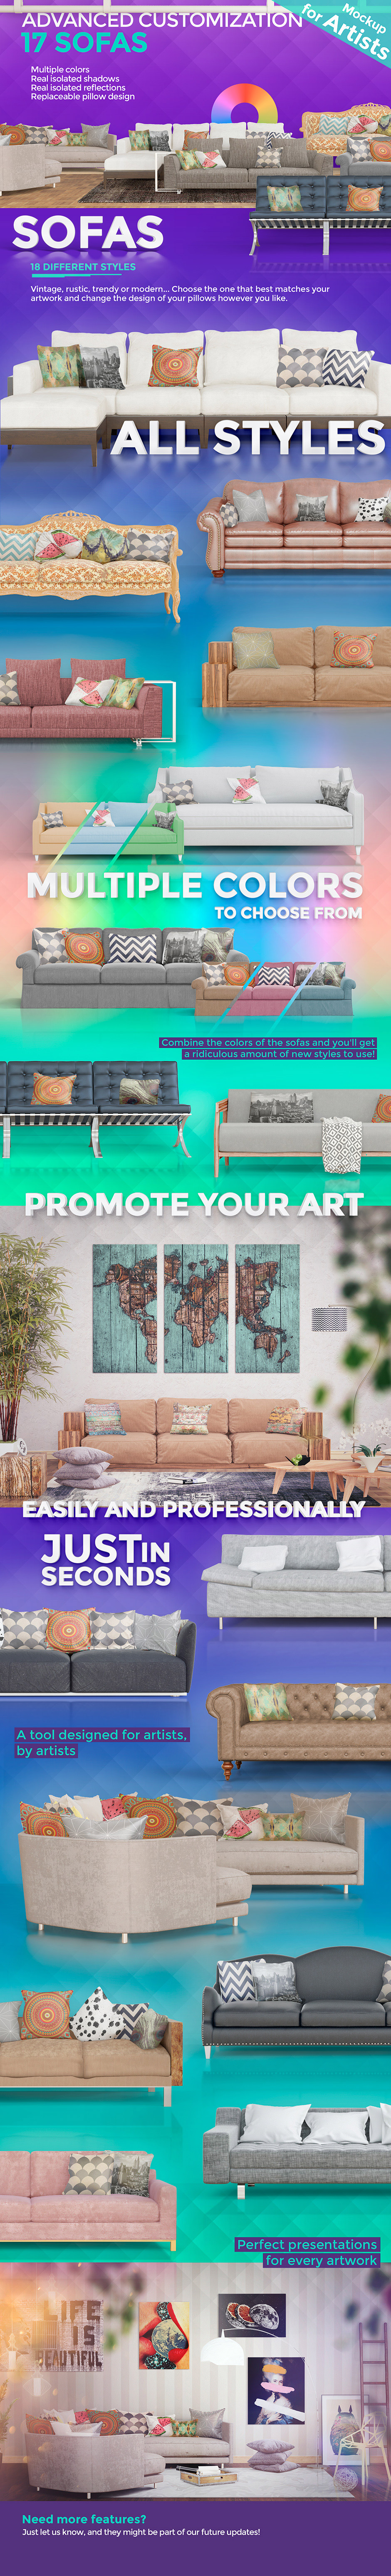 Pro Mockup psd for artists - 17 Sofas and 18 different styles